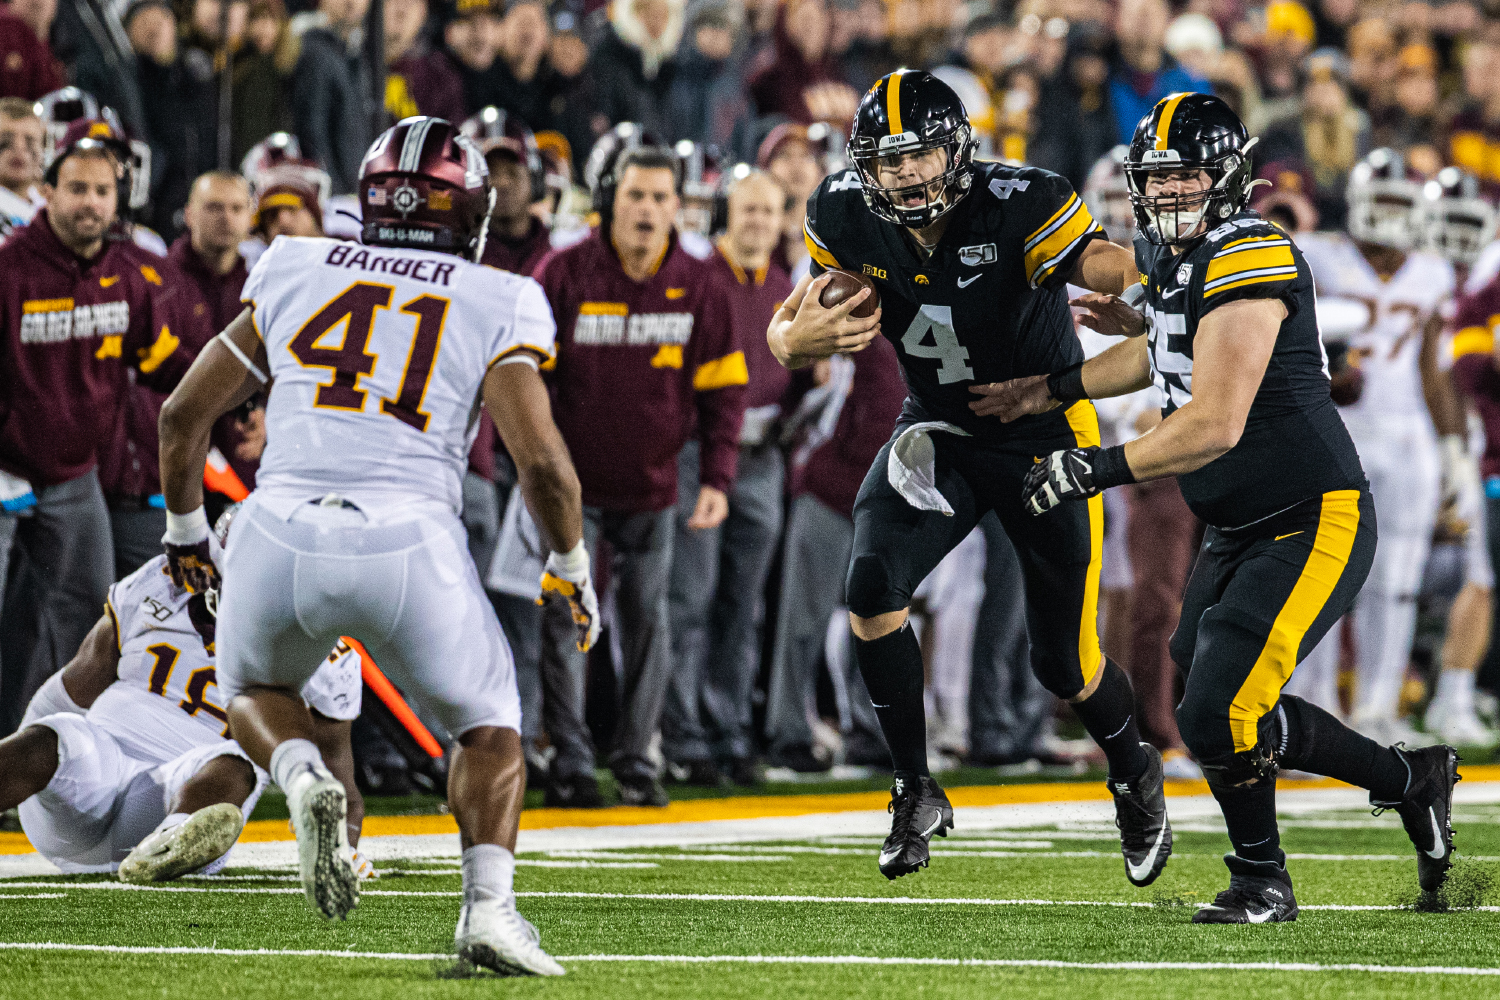 Iowa quarterback Nate Stanley carries the ball during a football game between Iowa and Minnesota at Kinnick Stadium on Saturday, Nov. 16, 2019. The Hawkeyes defeated the Gophers, 23-19. (Shivansh Ahuja/The Daily Iowan)